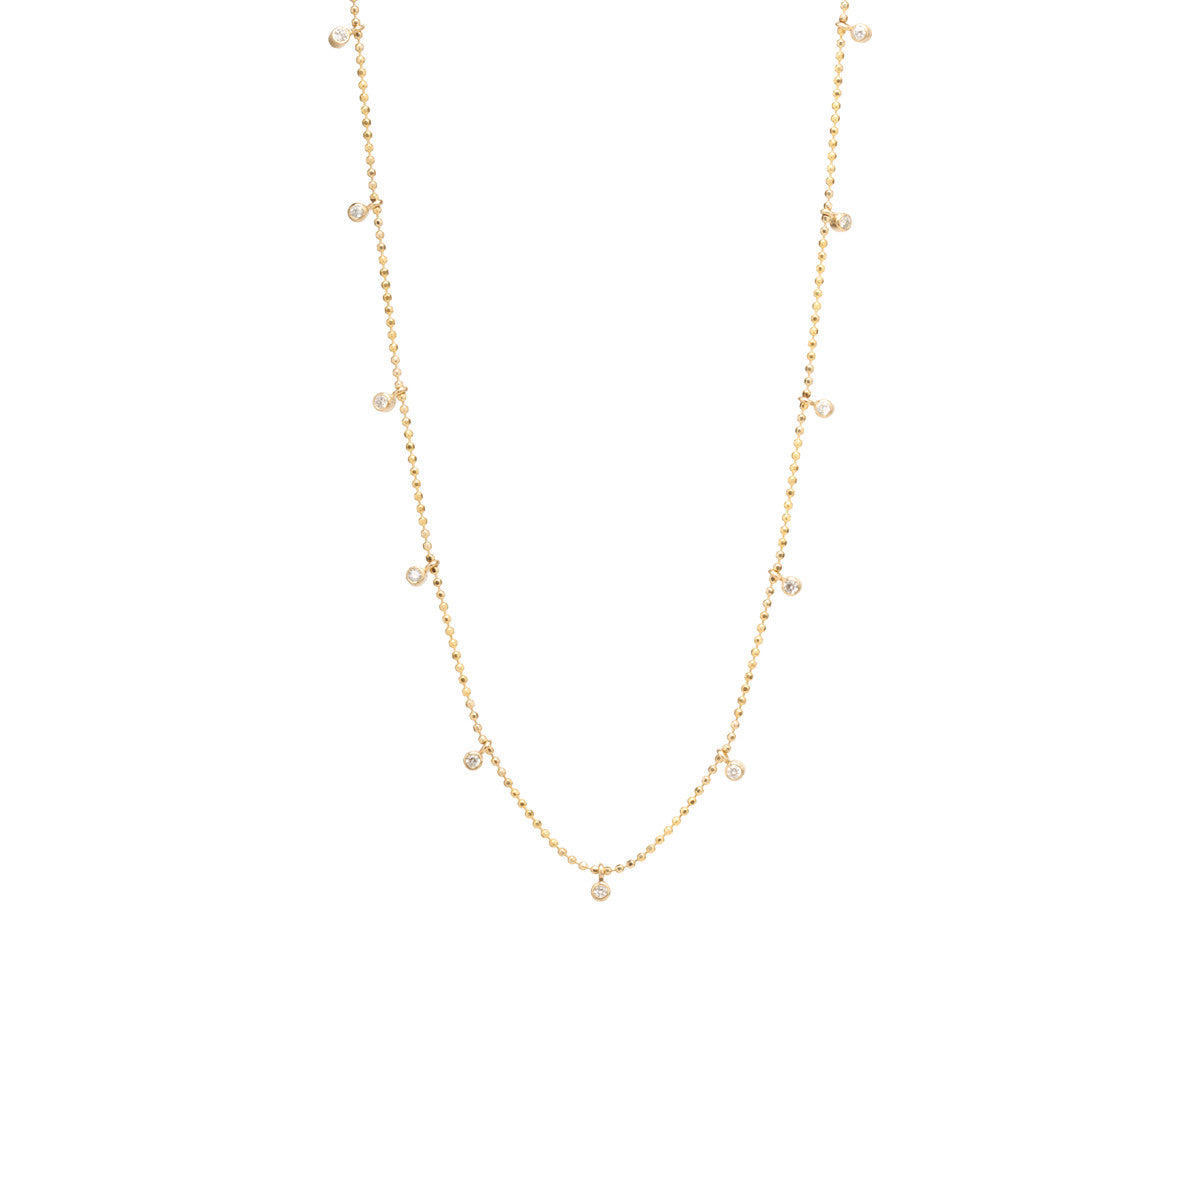 Zoë Chicco 14kt Yellow Gold 11 Dangling White Diamonds Necklace